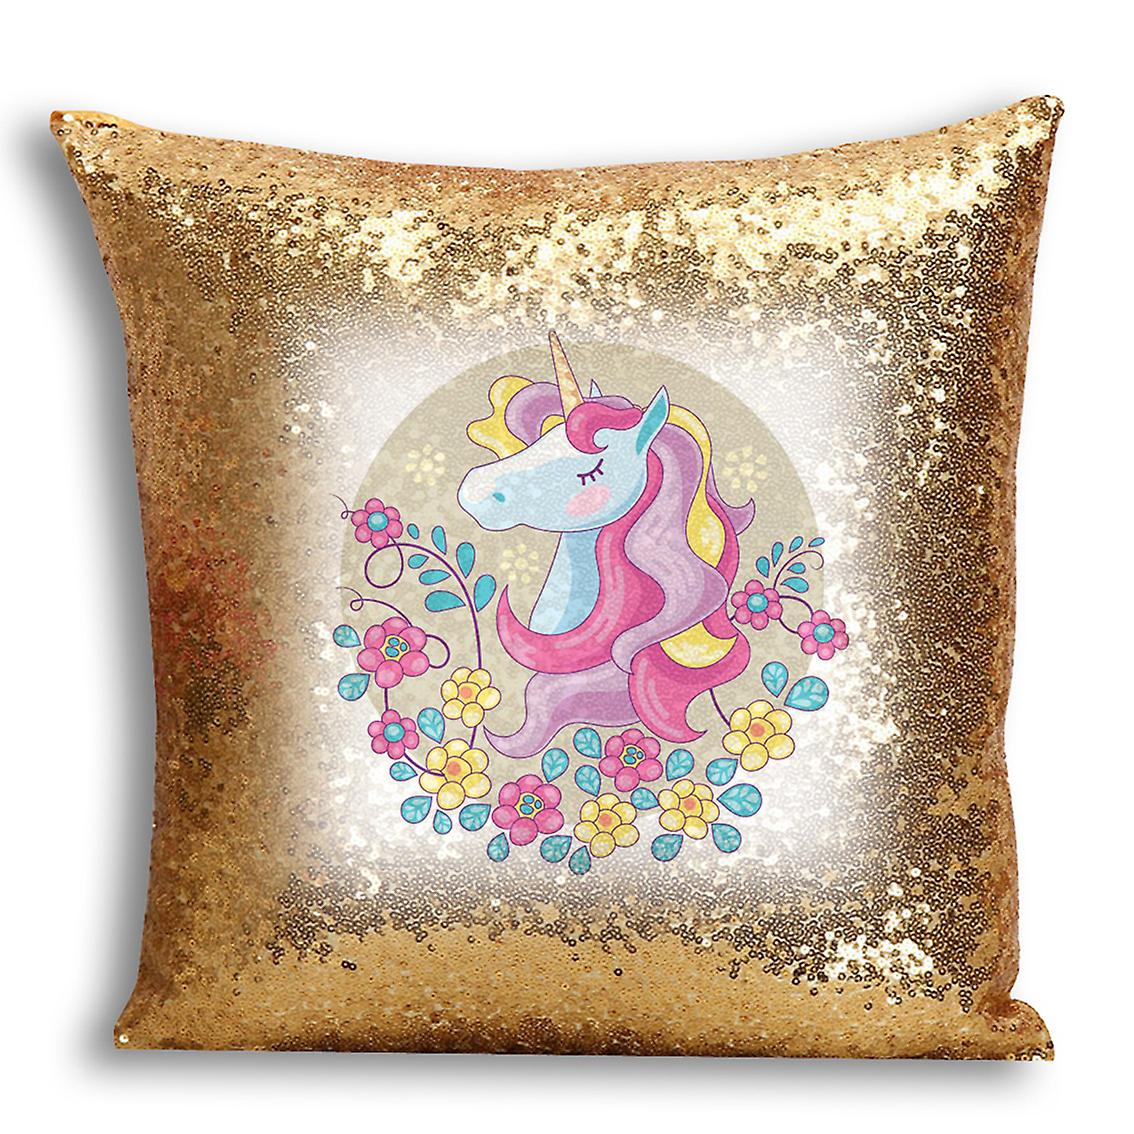 Decor With Sequin Home Cover Inserted Printed 5 For I Design tronixsUnicorn Gold CushionPillow rCBdxoe